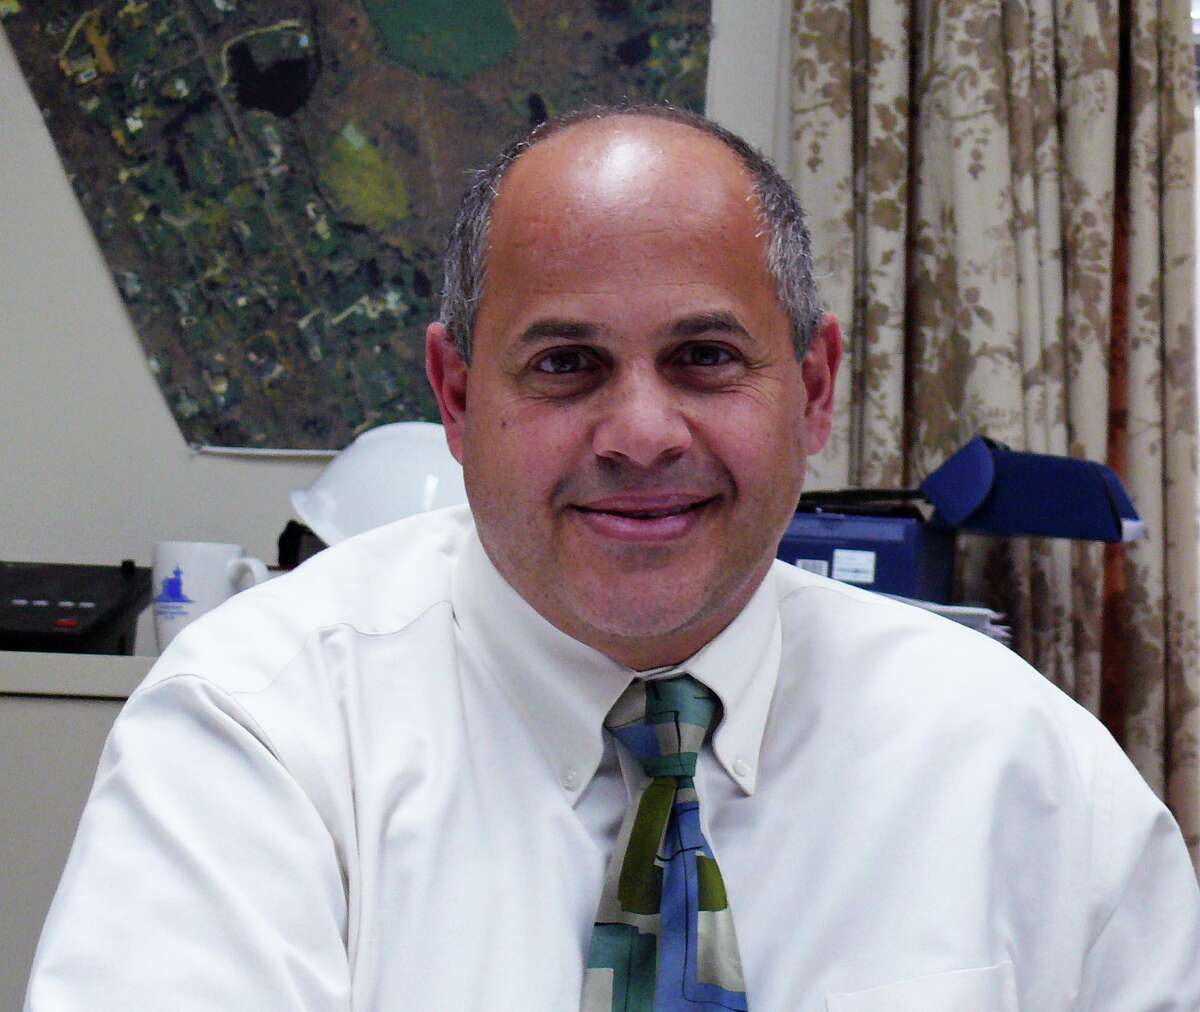 Former Fairfield Public Works Director Joseph Michelangelo faces criminal charges in fill pile scandal.